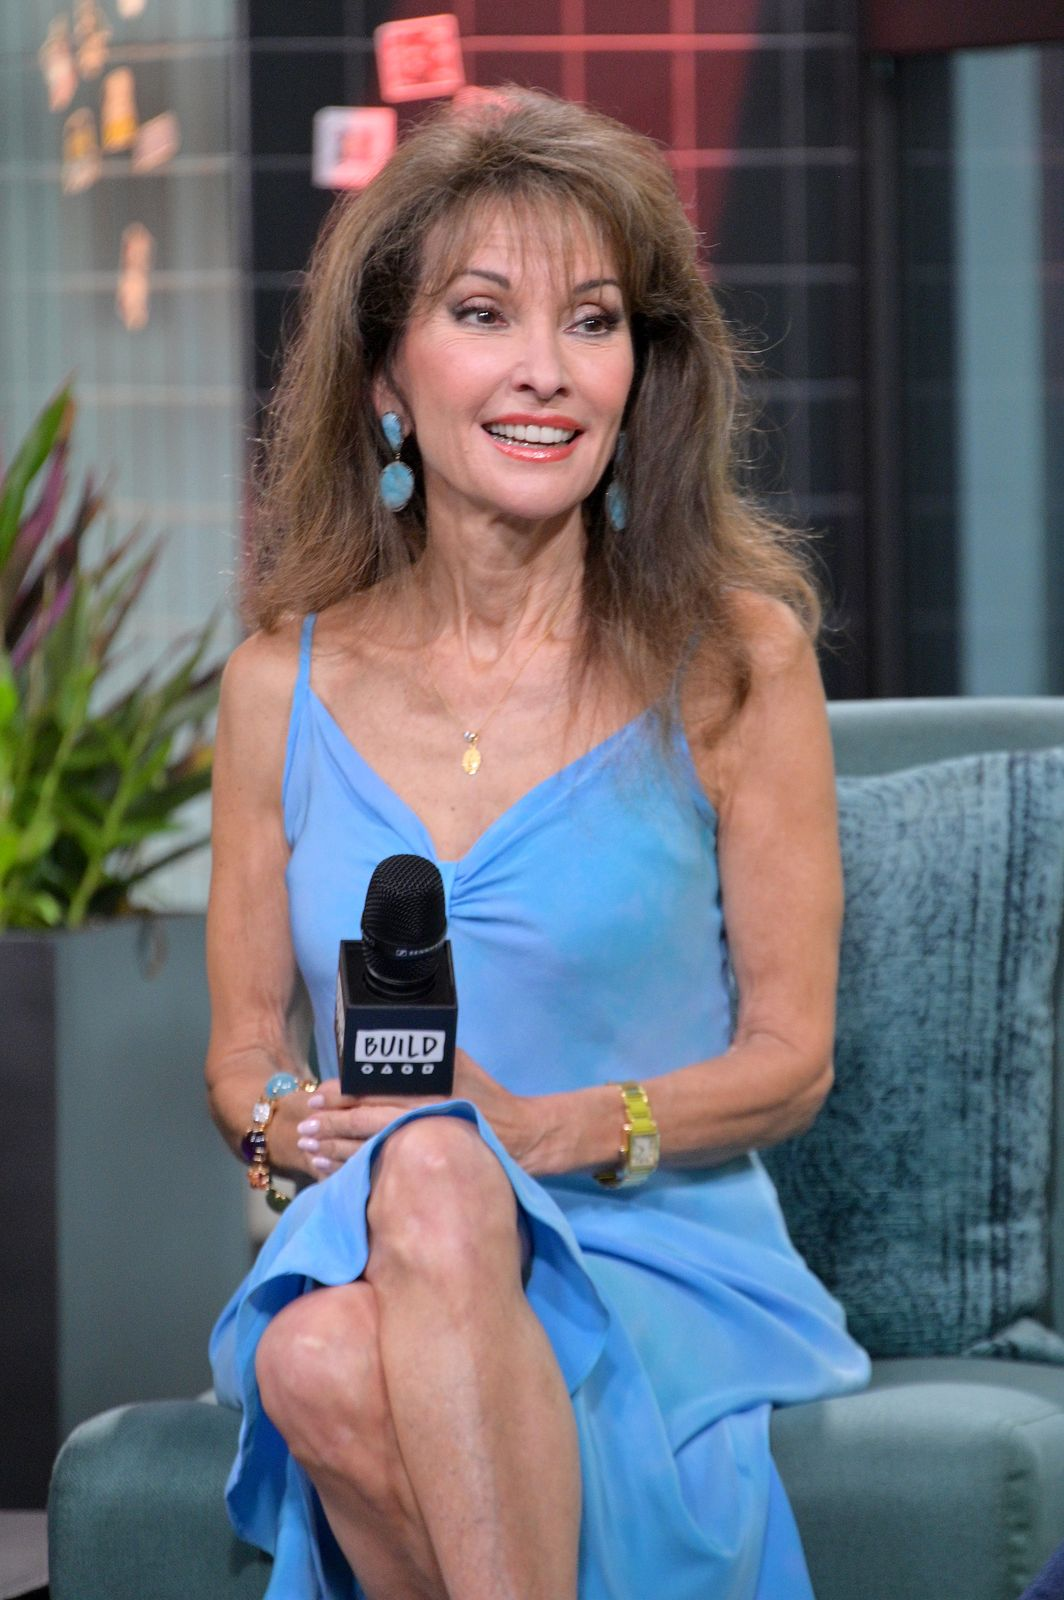 """Susan Lucci at Build to discuss the show """"Celebrity Autobiography"""" on July 09, 2019 